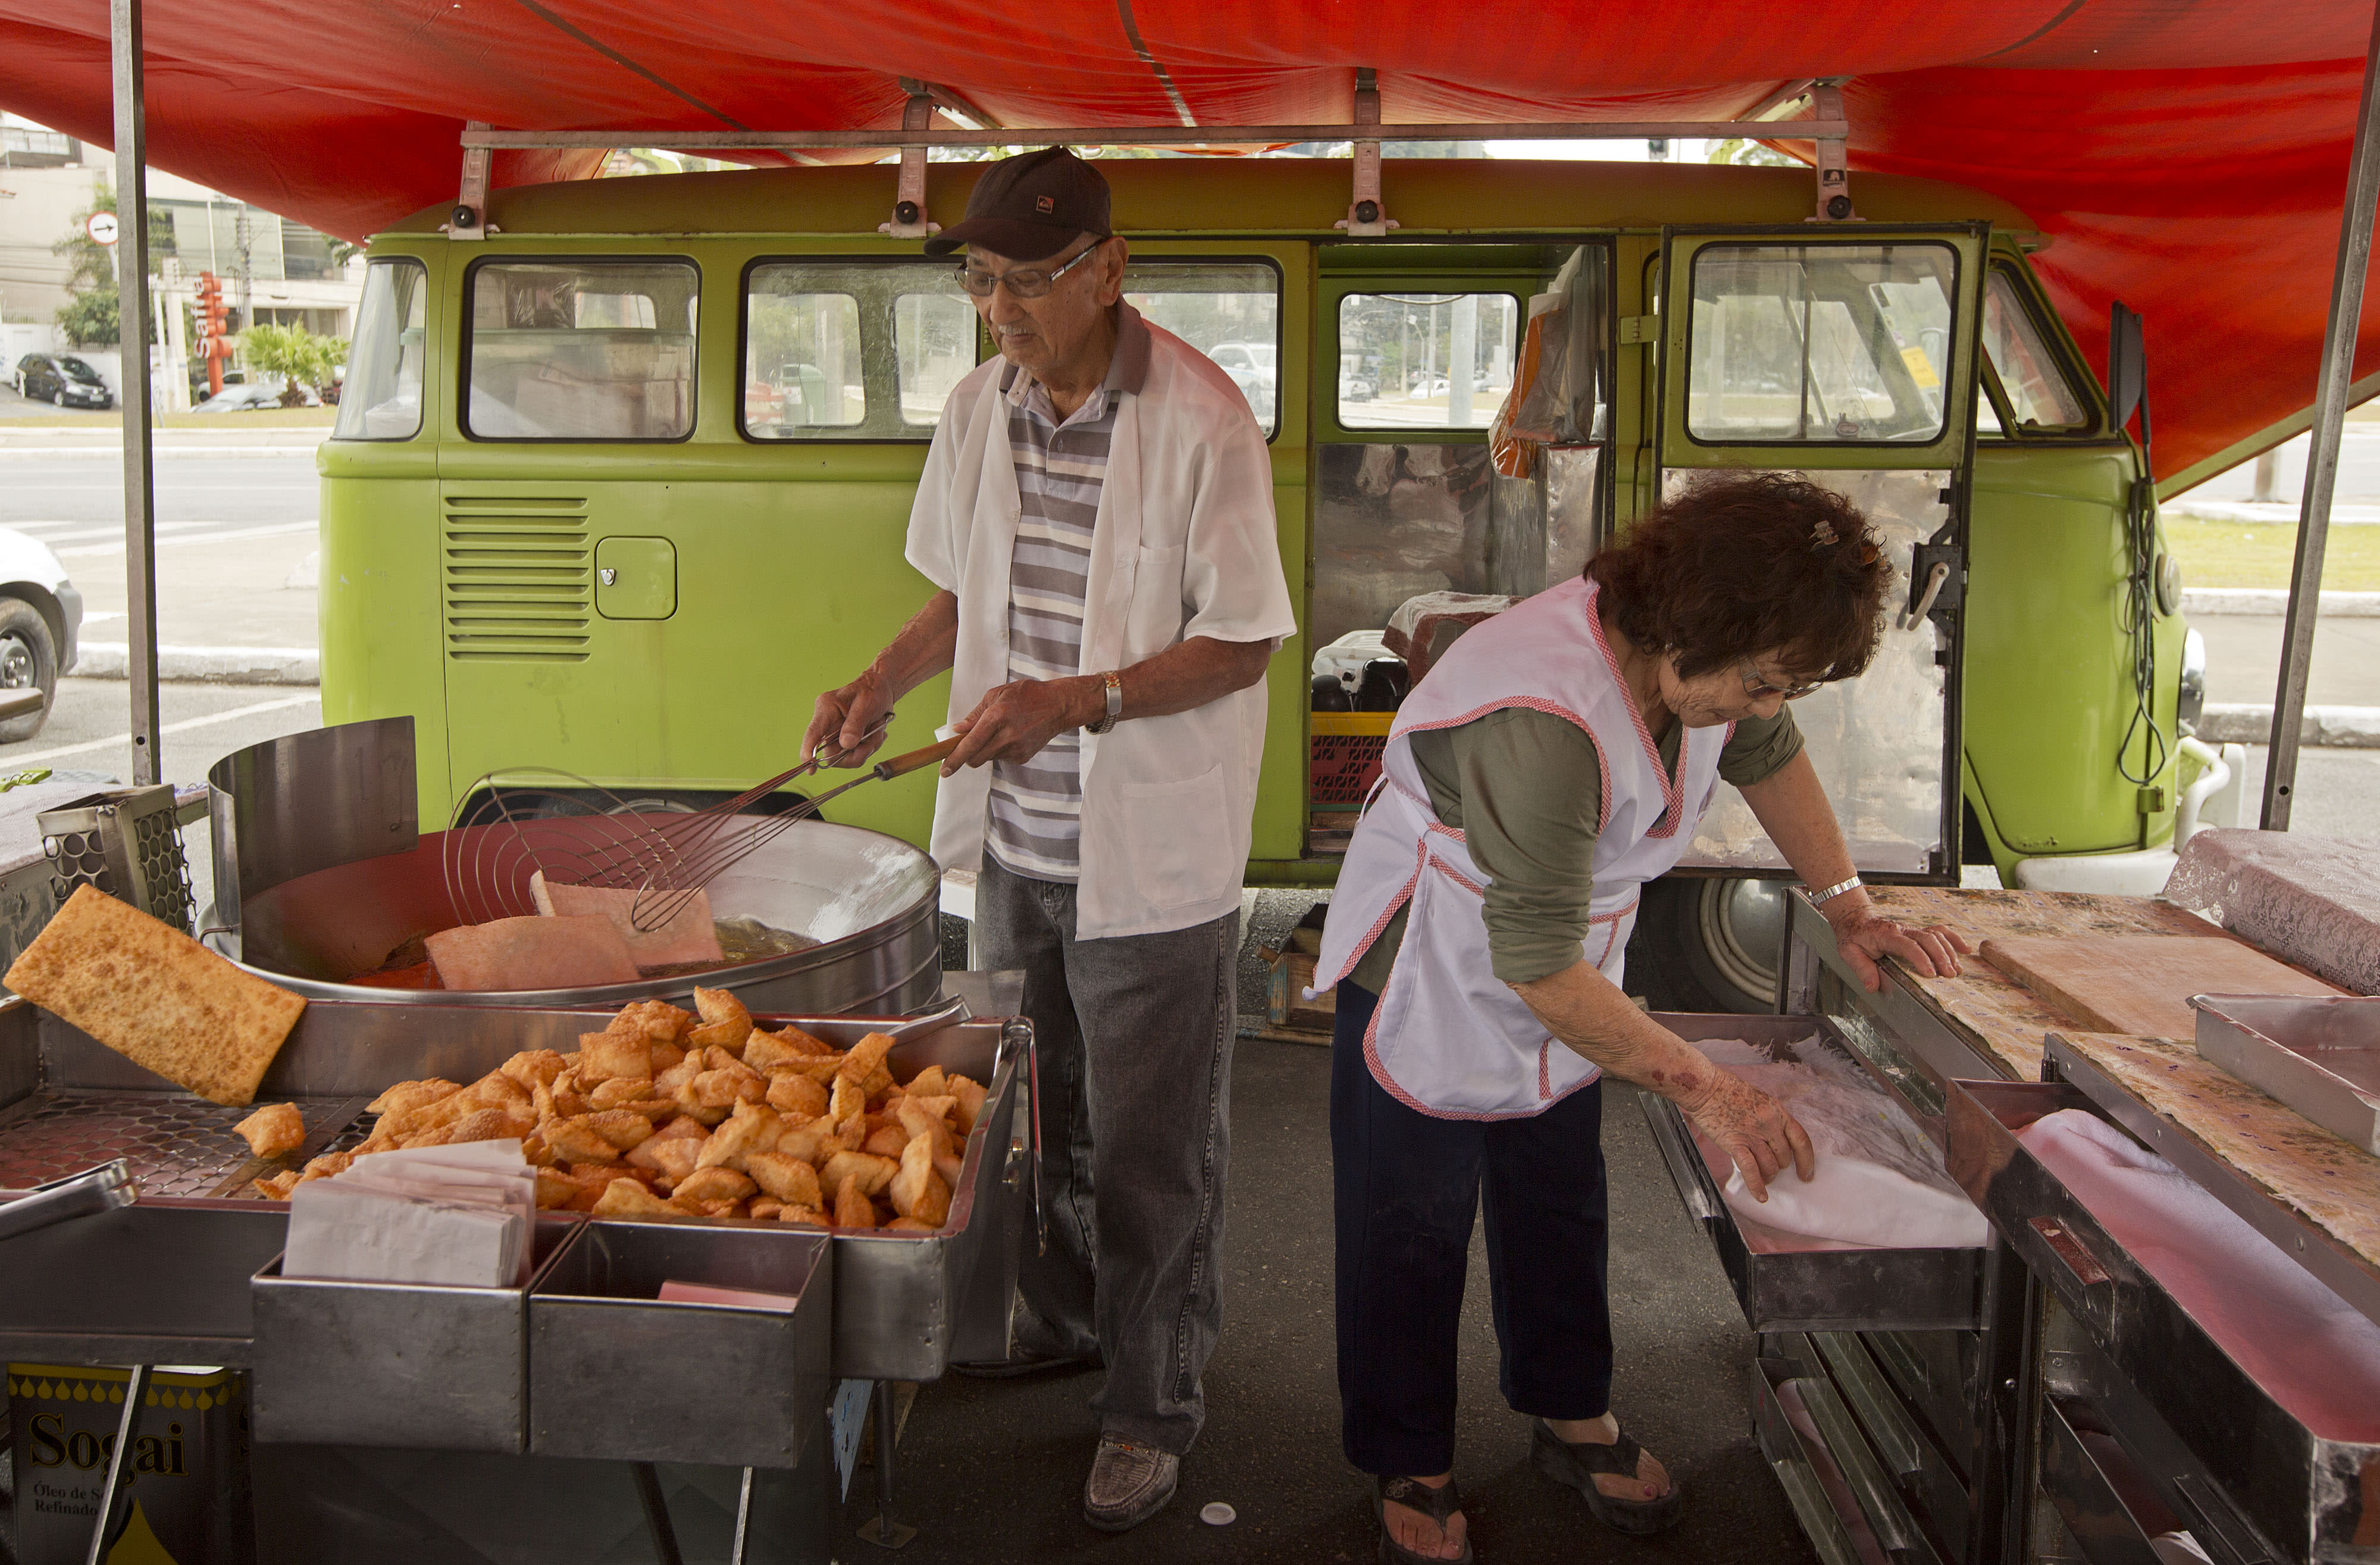 """In this Sept. 3, 2013 photo, Jorge Hanashiro and his wife Ana, prepare deep fried meat and vegetable pastry pies at an open-air market, with their light green 1974 Volkswagon van or Kombi, parked nearby, in Sao Paulo, Brazil. """"There may be safer and more modern cars around, but for me the Kombi is the best vehicle to transport my stall and products to the six open air markets I visit each week,"""" the 77-year-old Hanashiro said. """"It is economical, rugged and easy to repair."""" (AP Photo/Andre Penner)"""